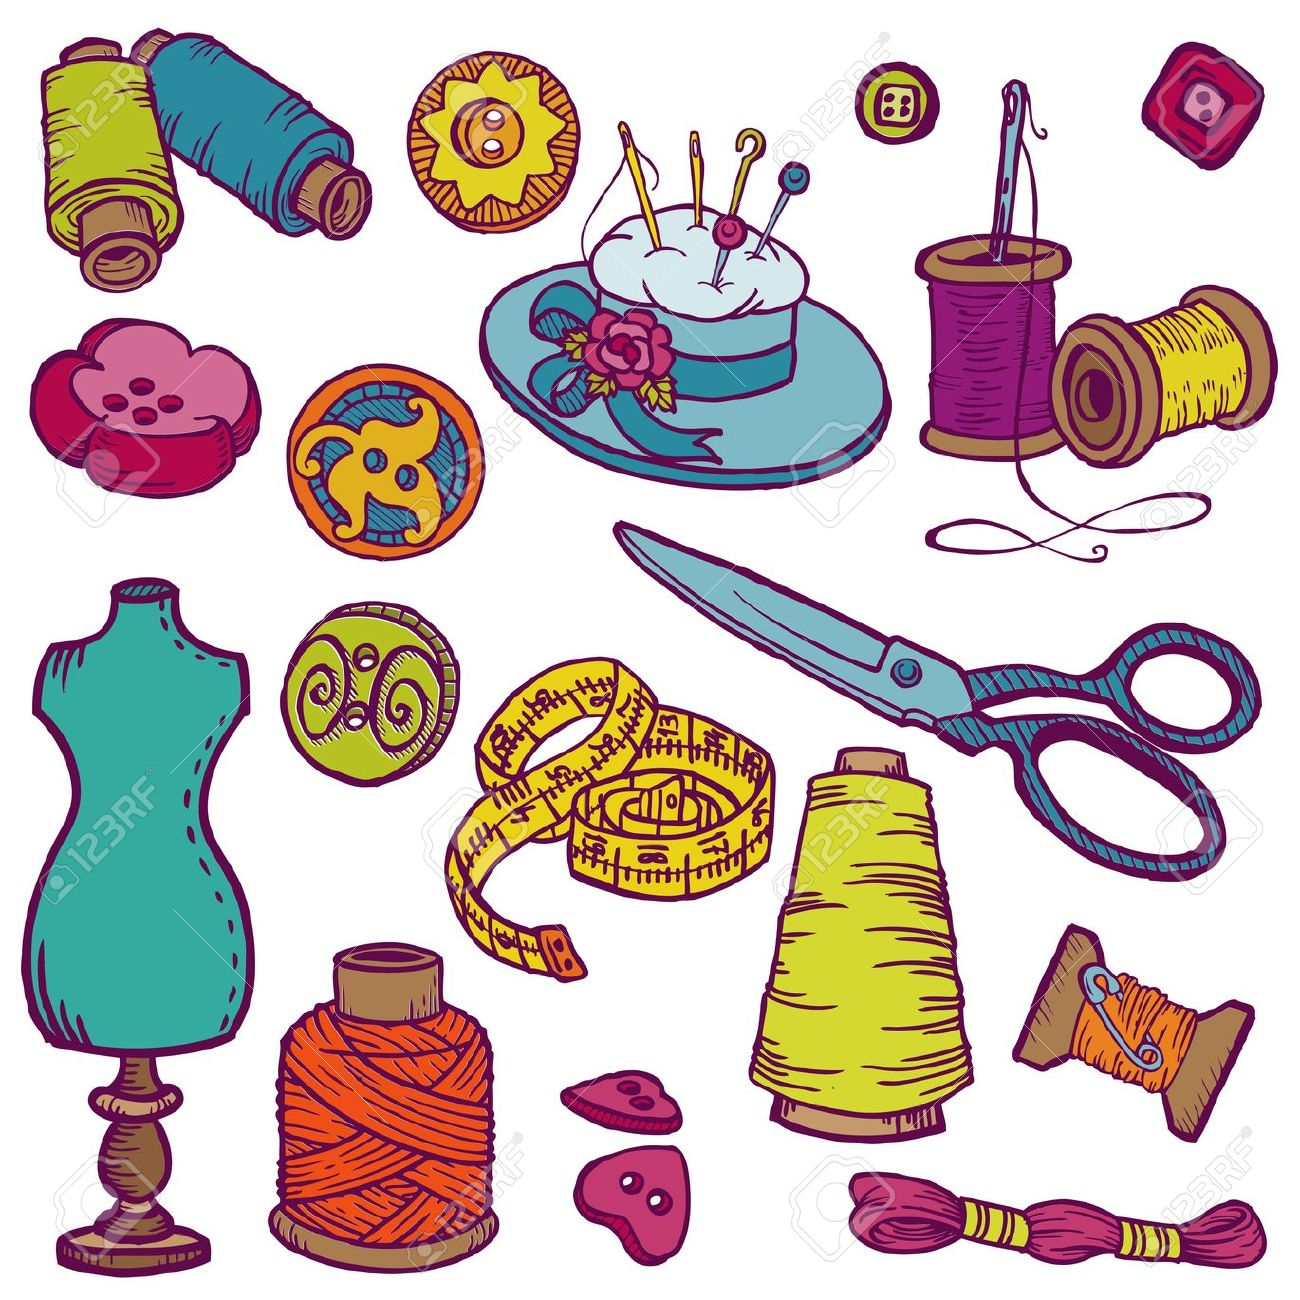 1300x1300 Free Clipart Knitting Needles And Sewing Items